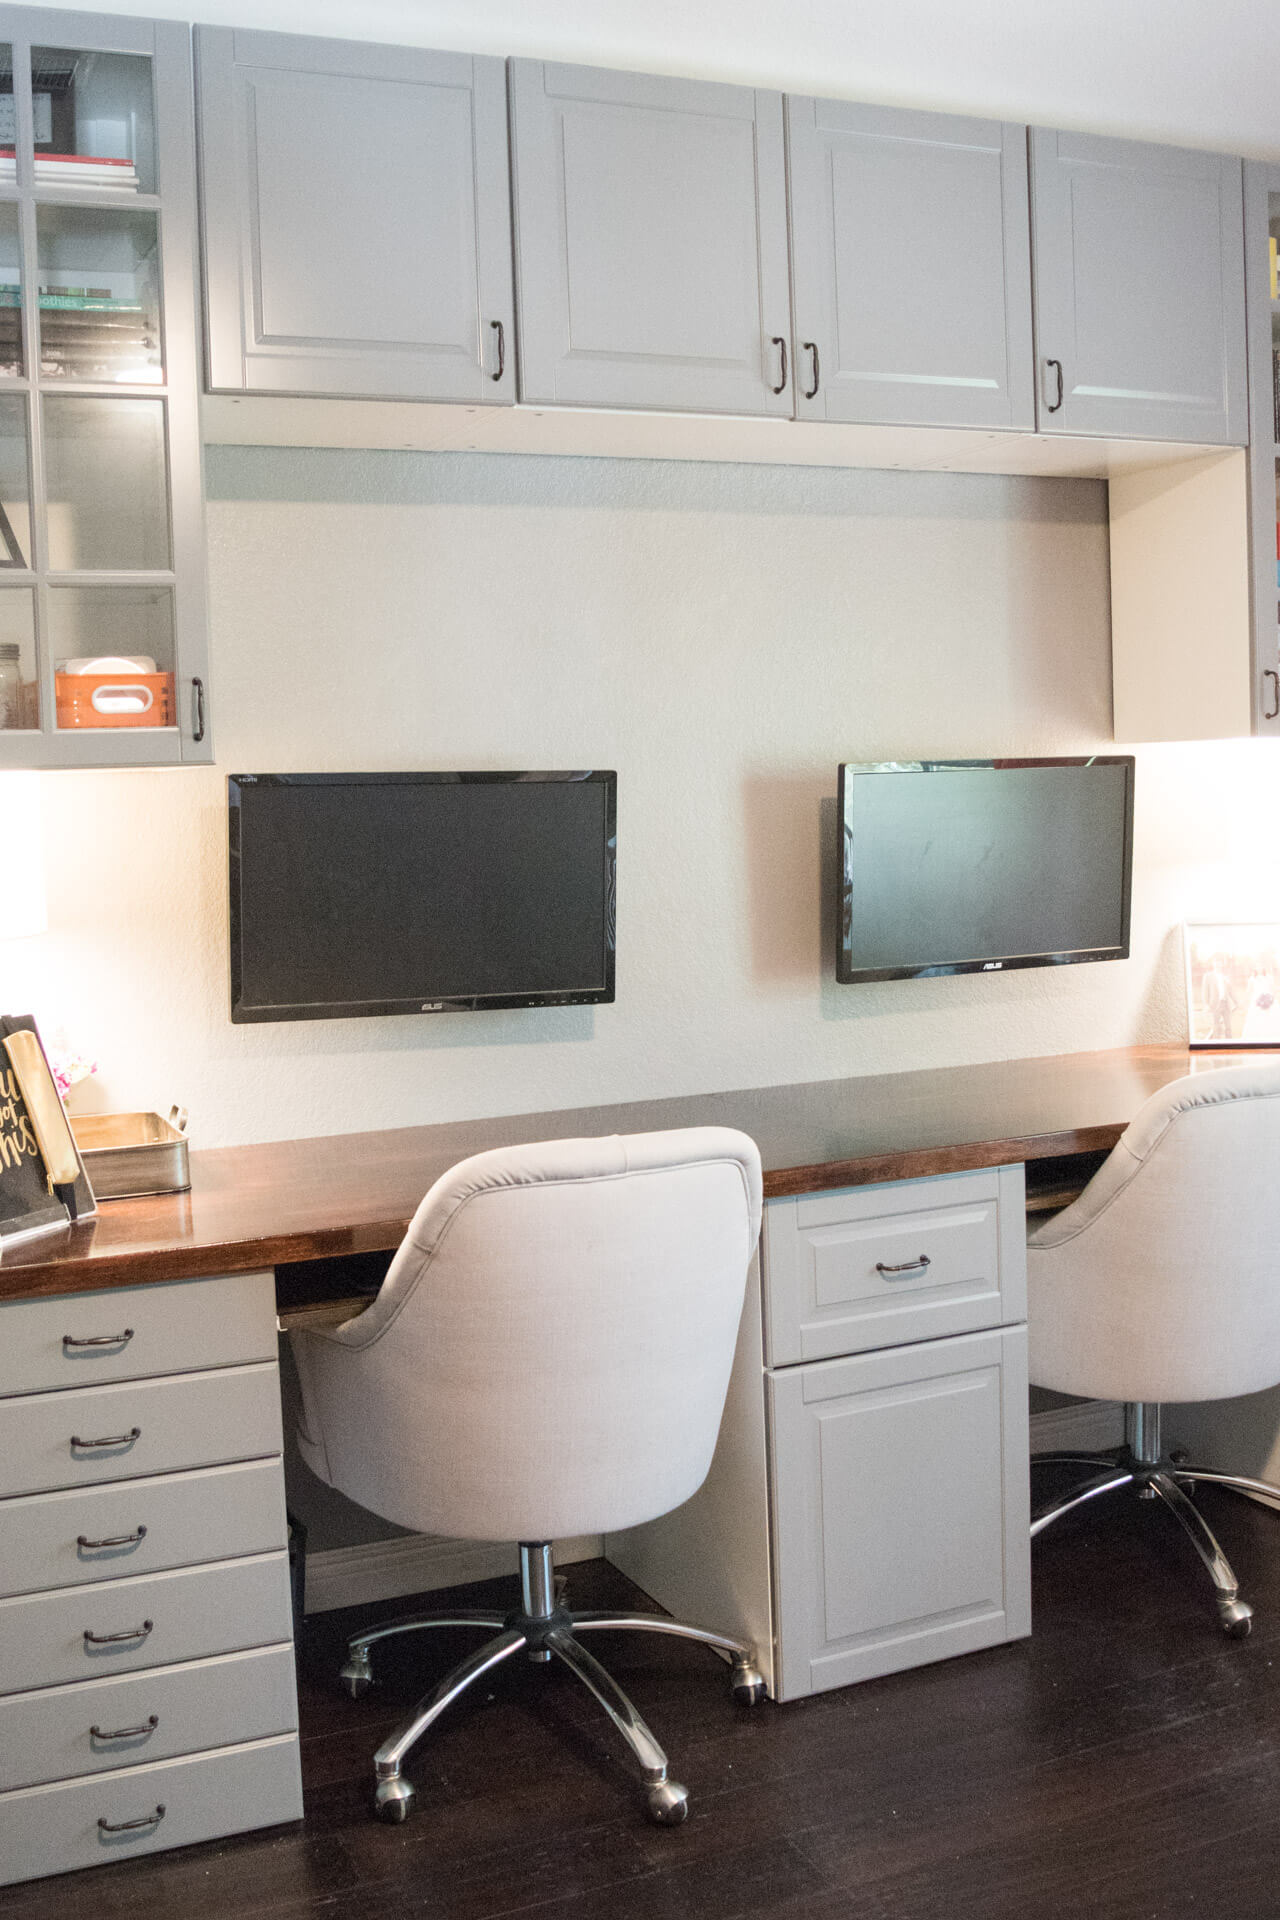 How To Make A Desk From Kitchen Cabinets Part Two Diy Without Fear